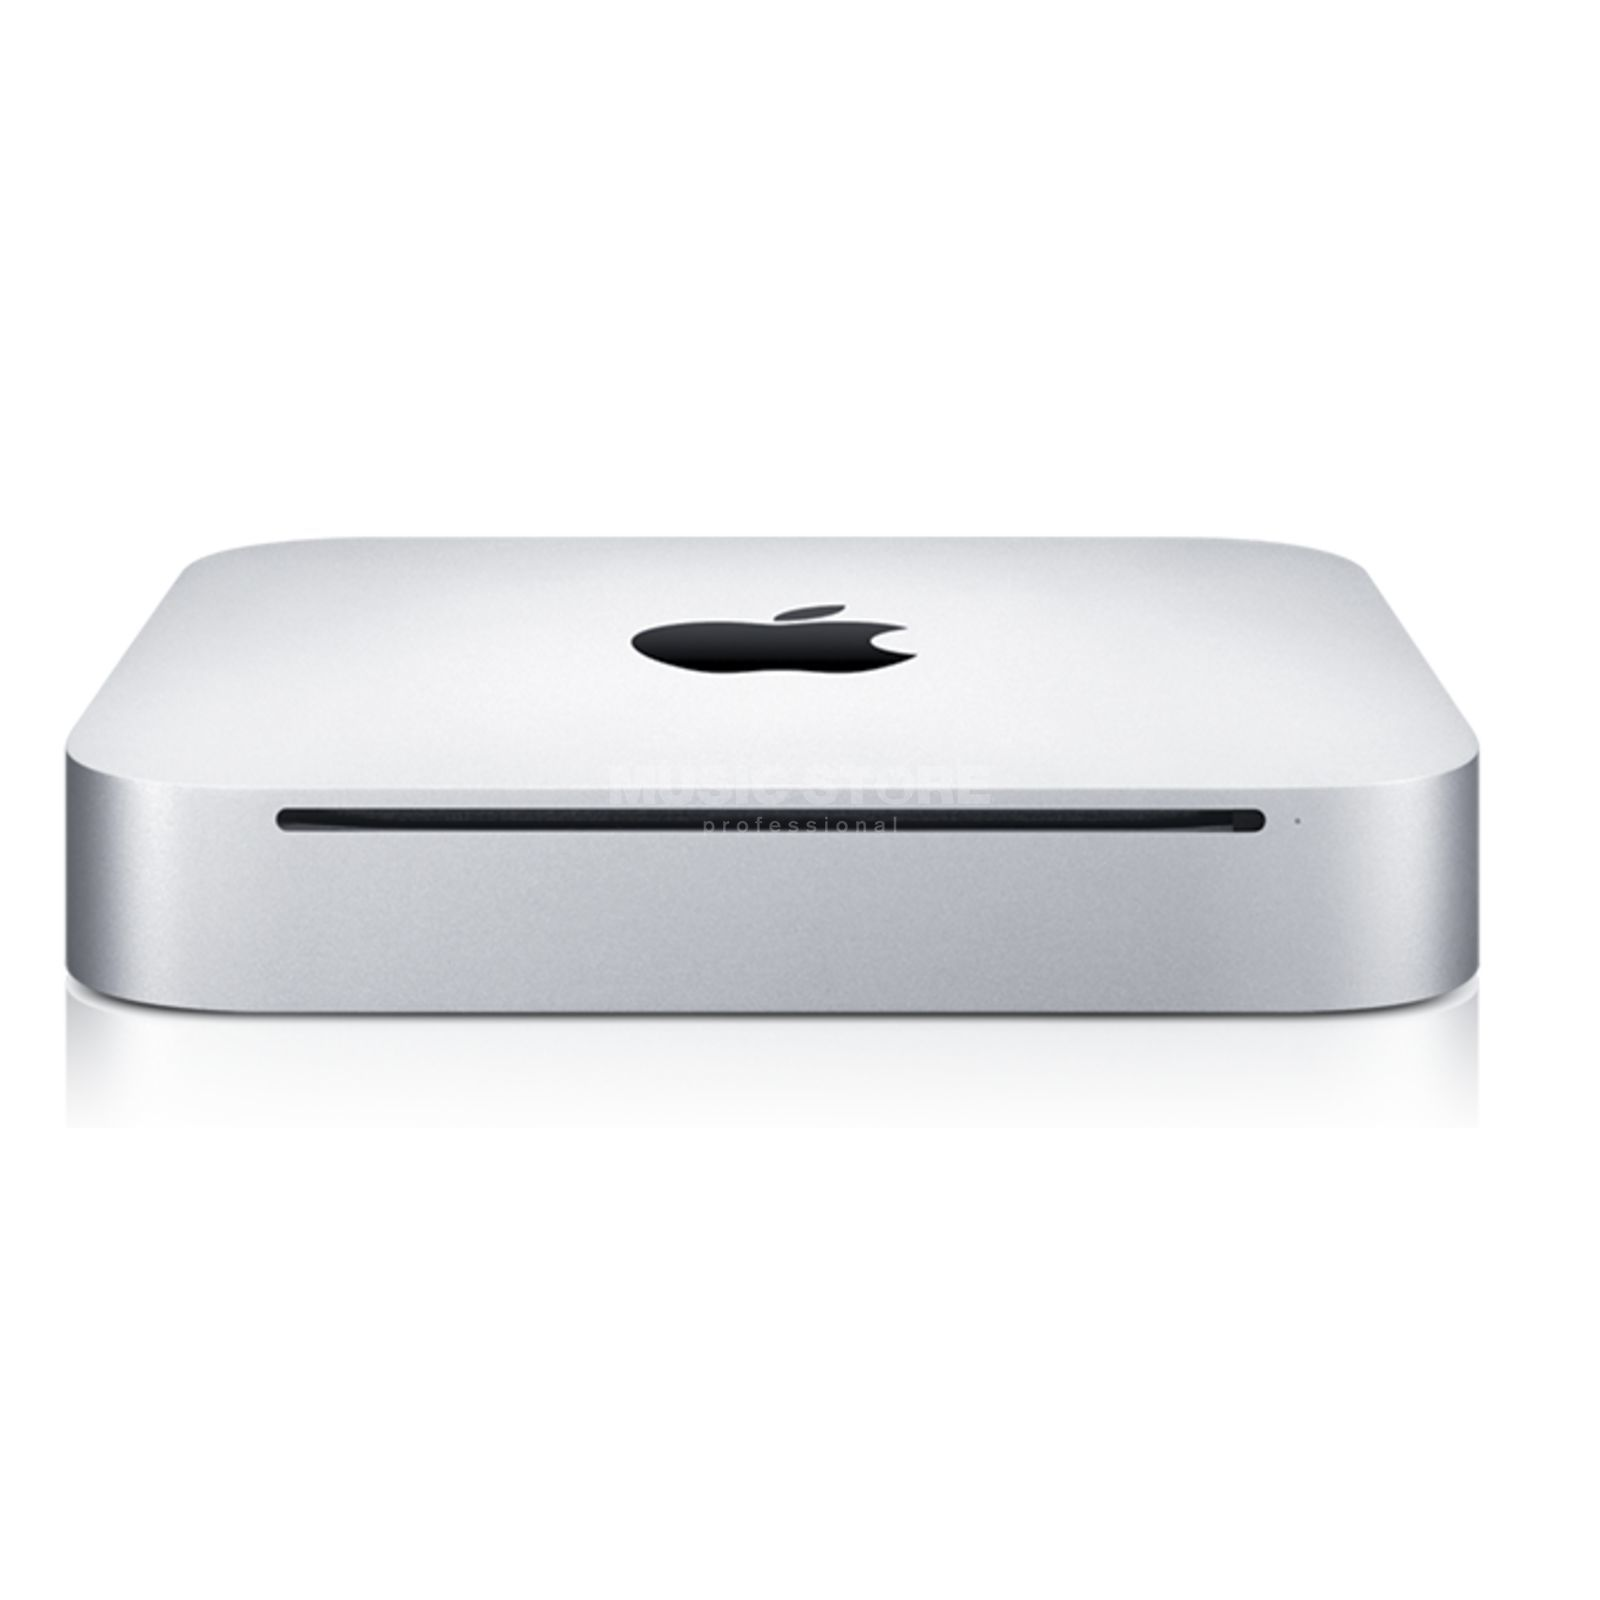 Apple Mac mini 2,4GHz 2GB RAM, 320 GB Produktbillede